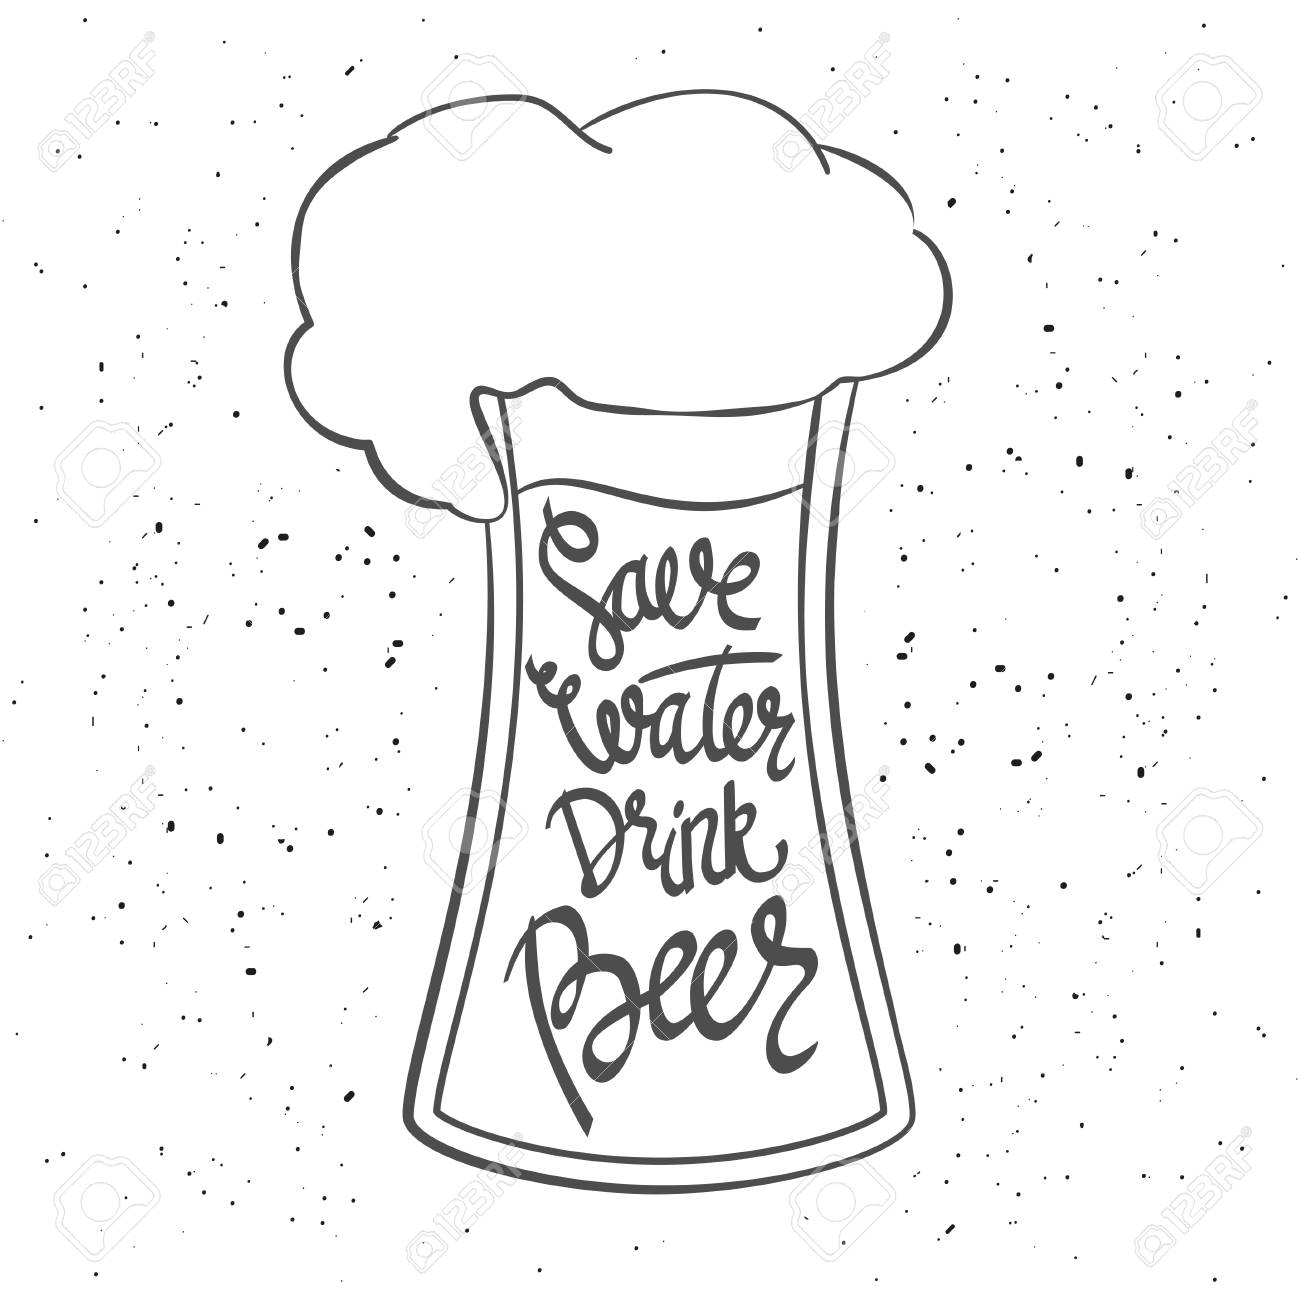 Save water drink beer hand lettering typographic poster monochrome